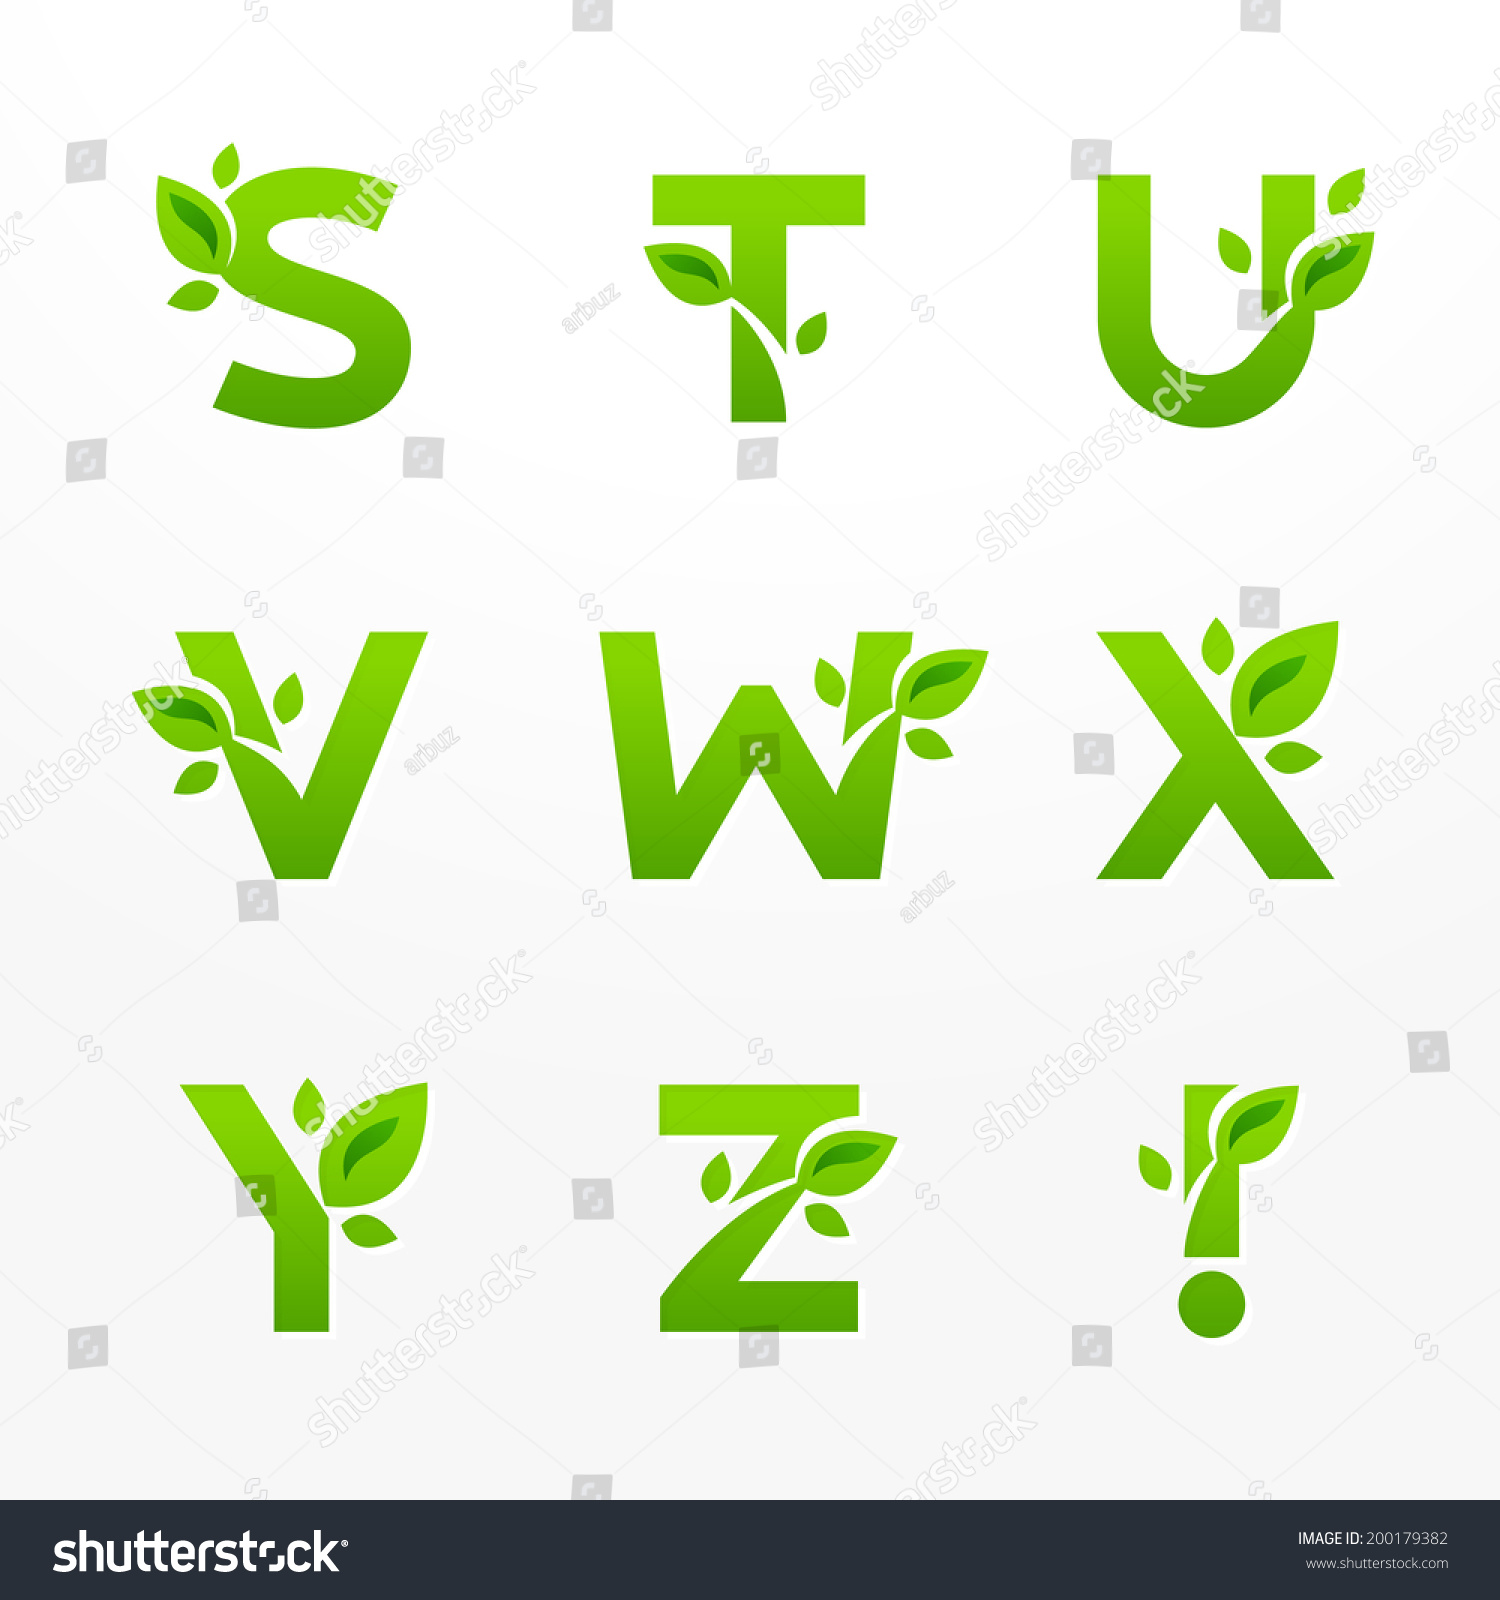 Vector set green eco letters logo stock vector 200179382 shutterstock vector set of green eco letters logo with leaves ecological font from s to z biocorpaavc Gallery